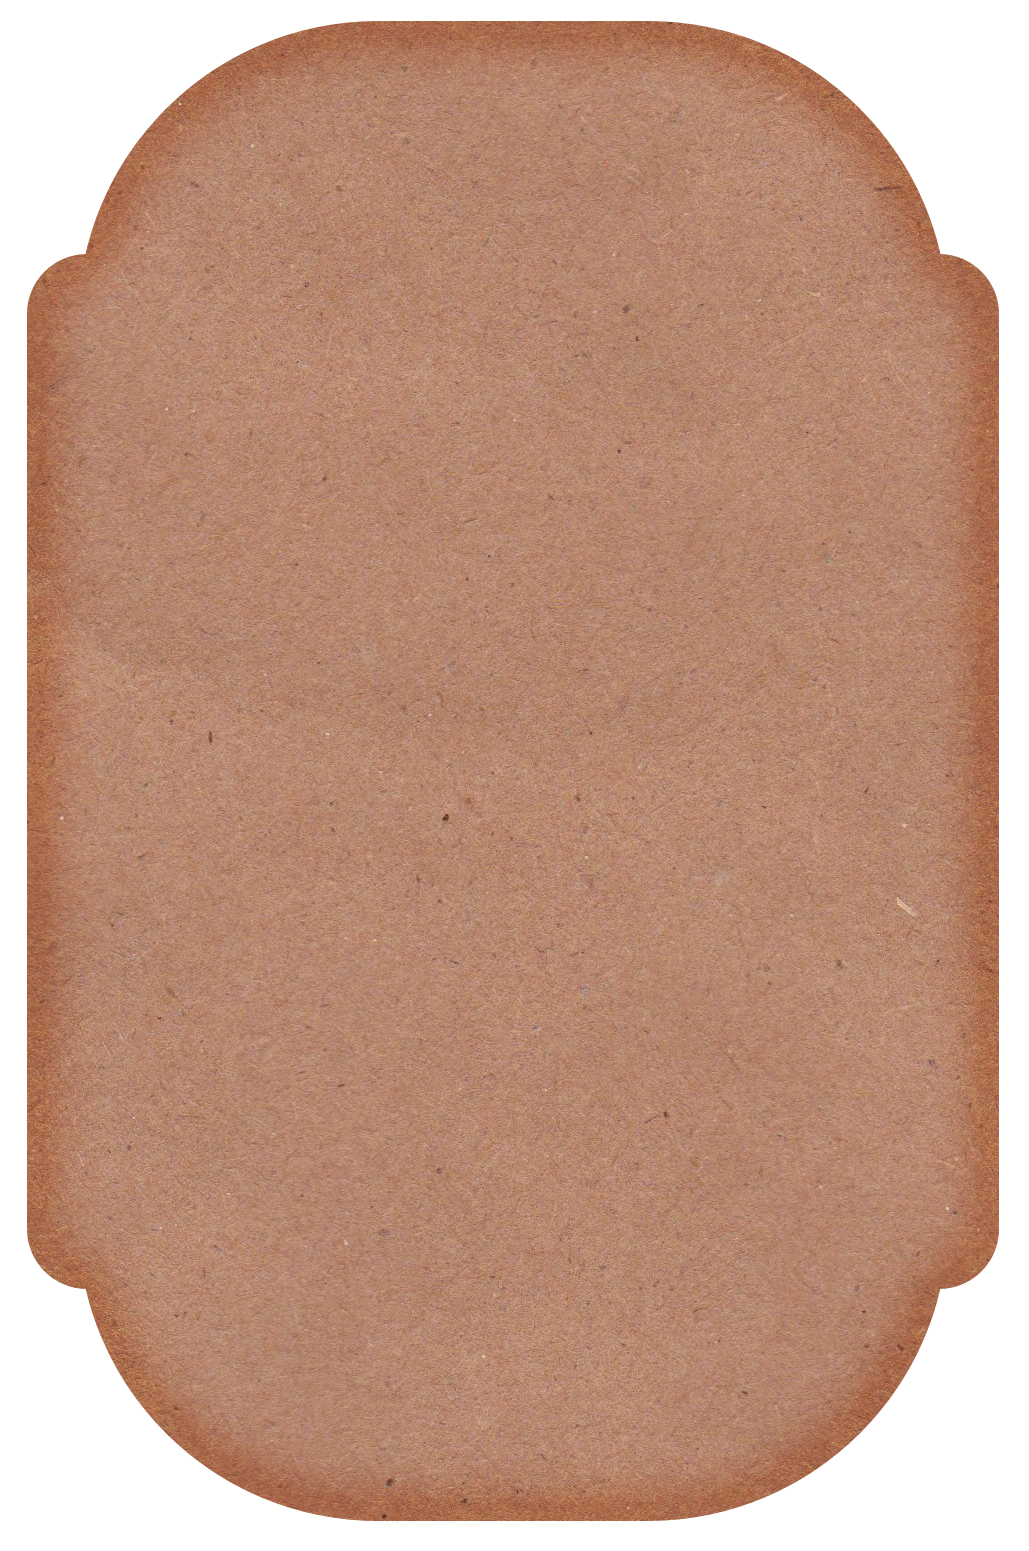 Napkin clipart brown paper. Kraft label projects to